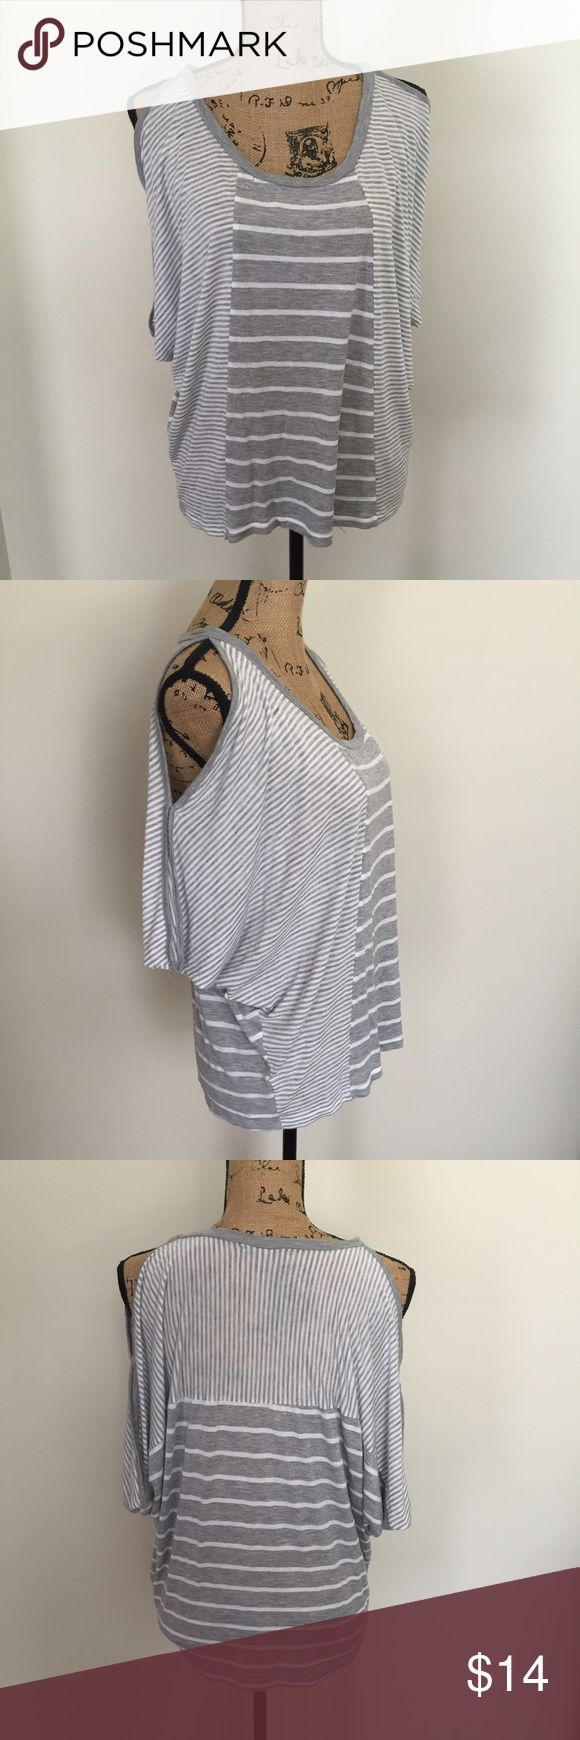 Just Ginger Striped Cold Shoulder Dolman top Gray and white striped cold shoulder dolman sleeve tunic top by Just Ginger from Nordstrom. Excellent preowned condition, only being worn once for a few hours. Marled a size large but I am a small and wore it oversized (as pictured on my size 6 mannequin) and it looks super cute. 💗 No hold or trades for any reason. I ship within 1 business day, which does not include weekends or holidays. Poshmark only. Thank you for looking! 💗 Nordstrom Tops…